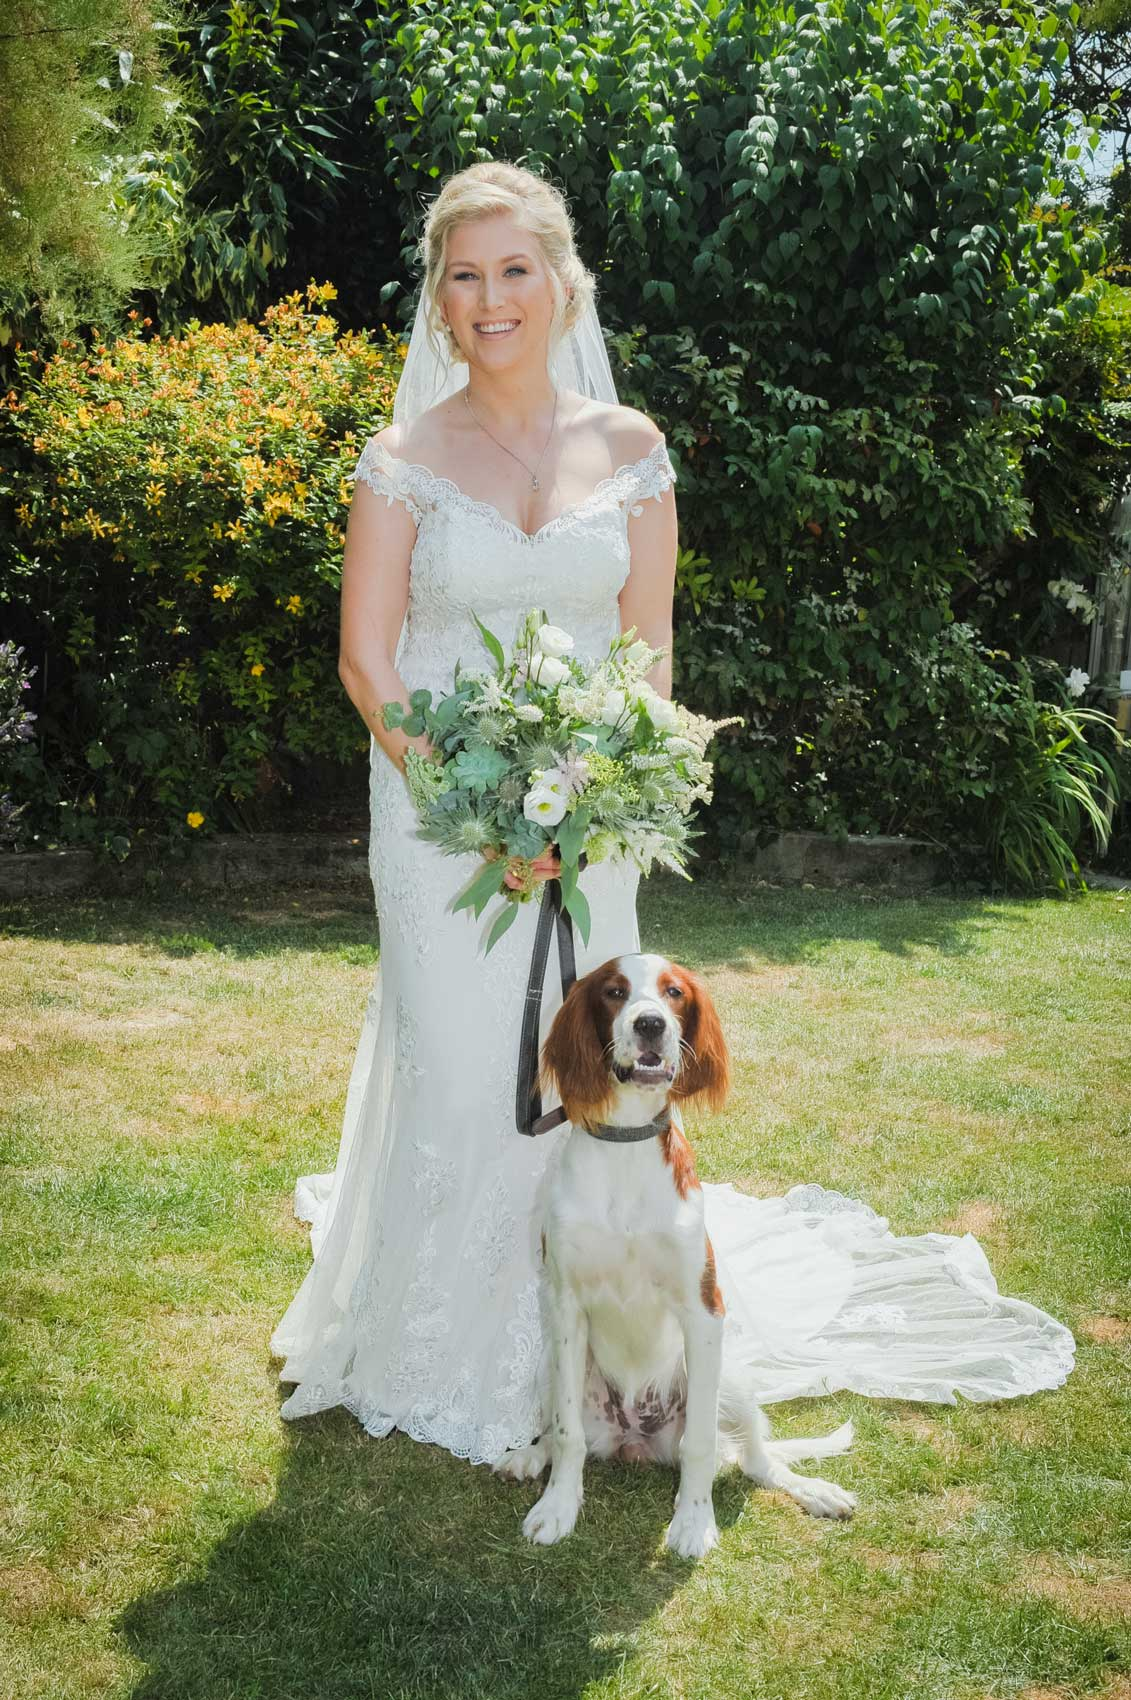 Bride and the Dog Wedding Photo Wedding